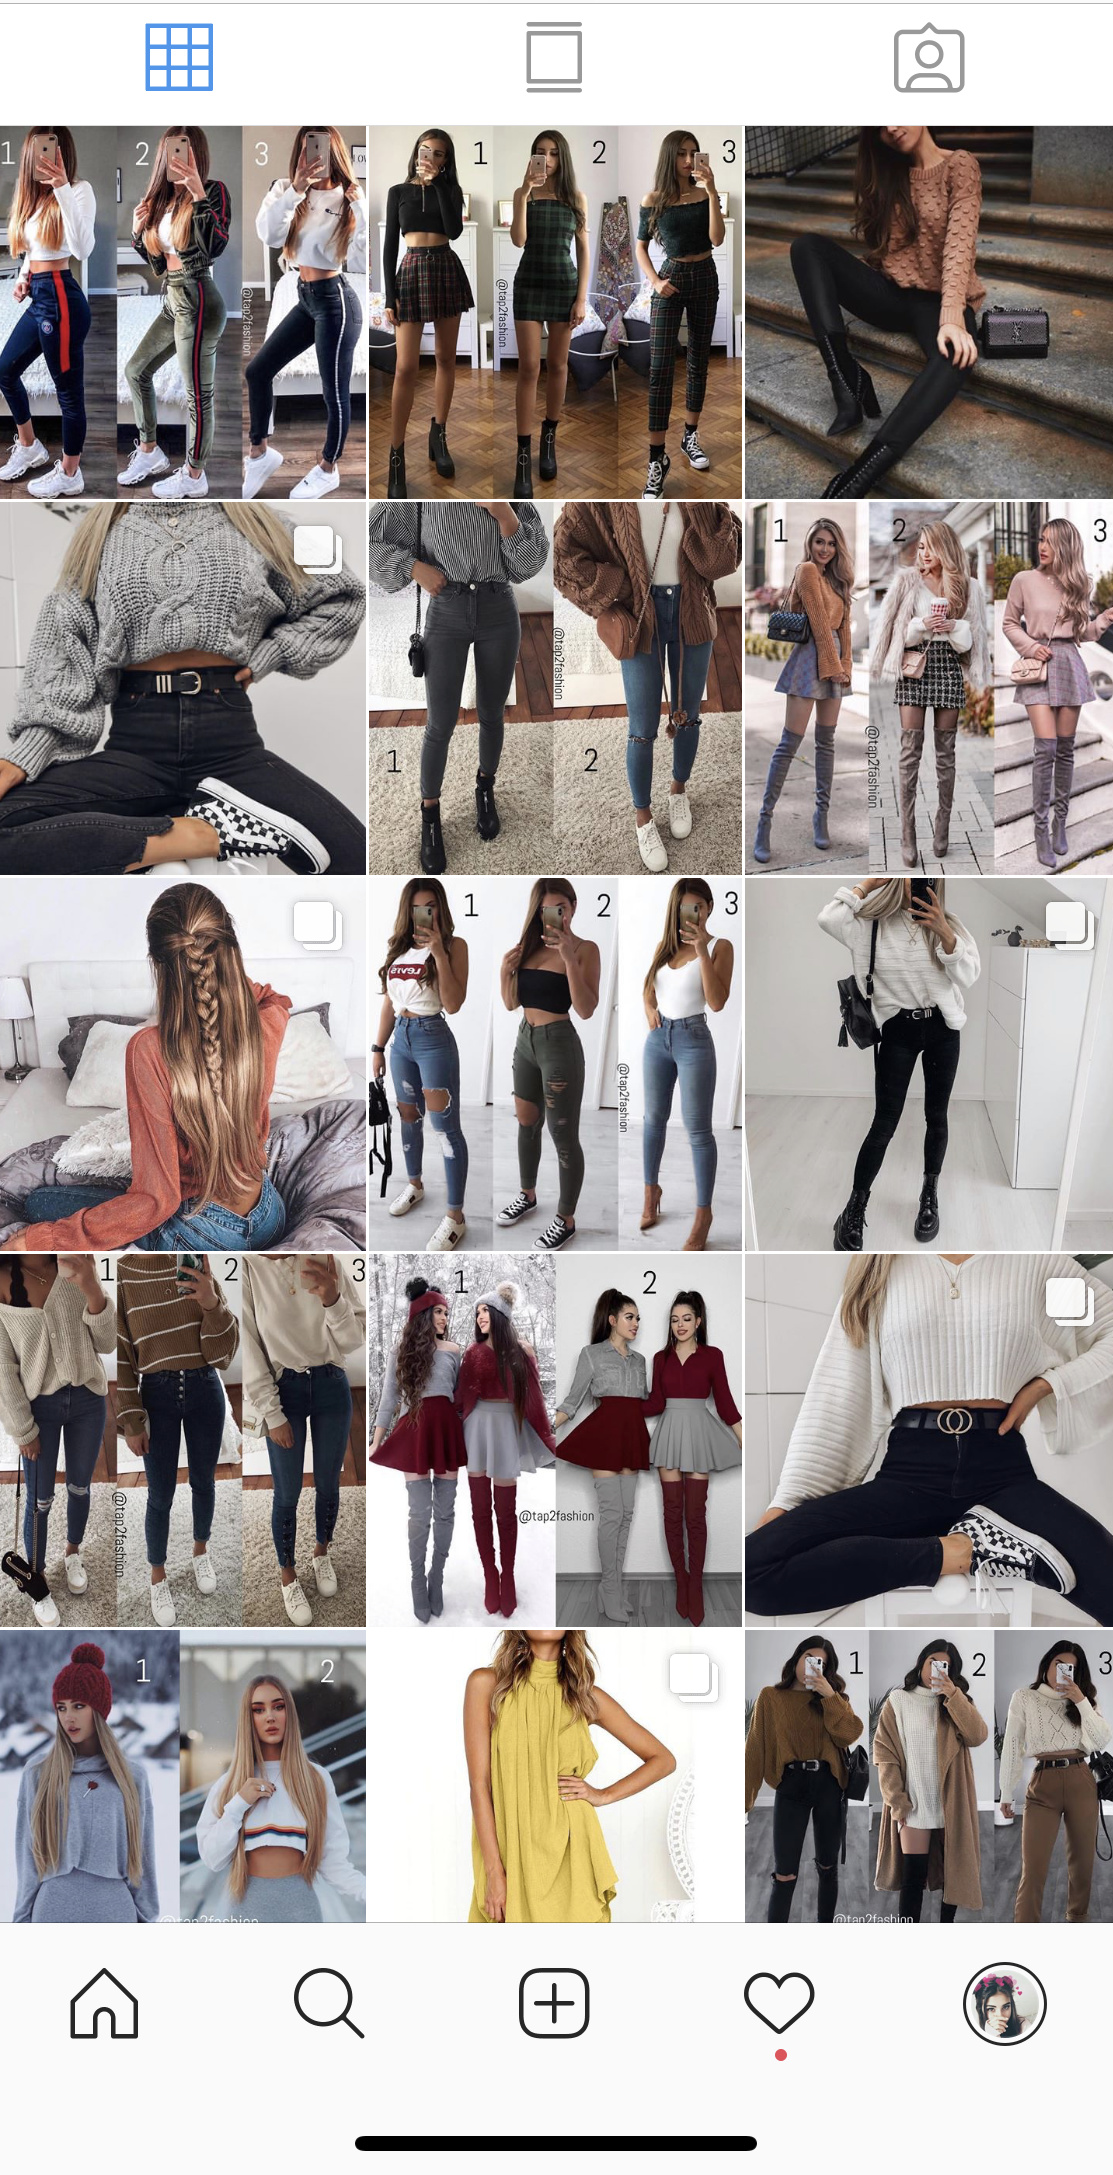 520K Fashion Instagram Account for SALE - Instagram - SWAPD